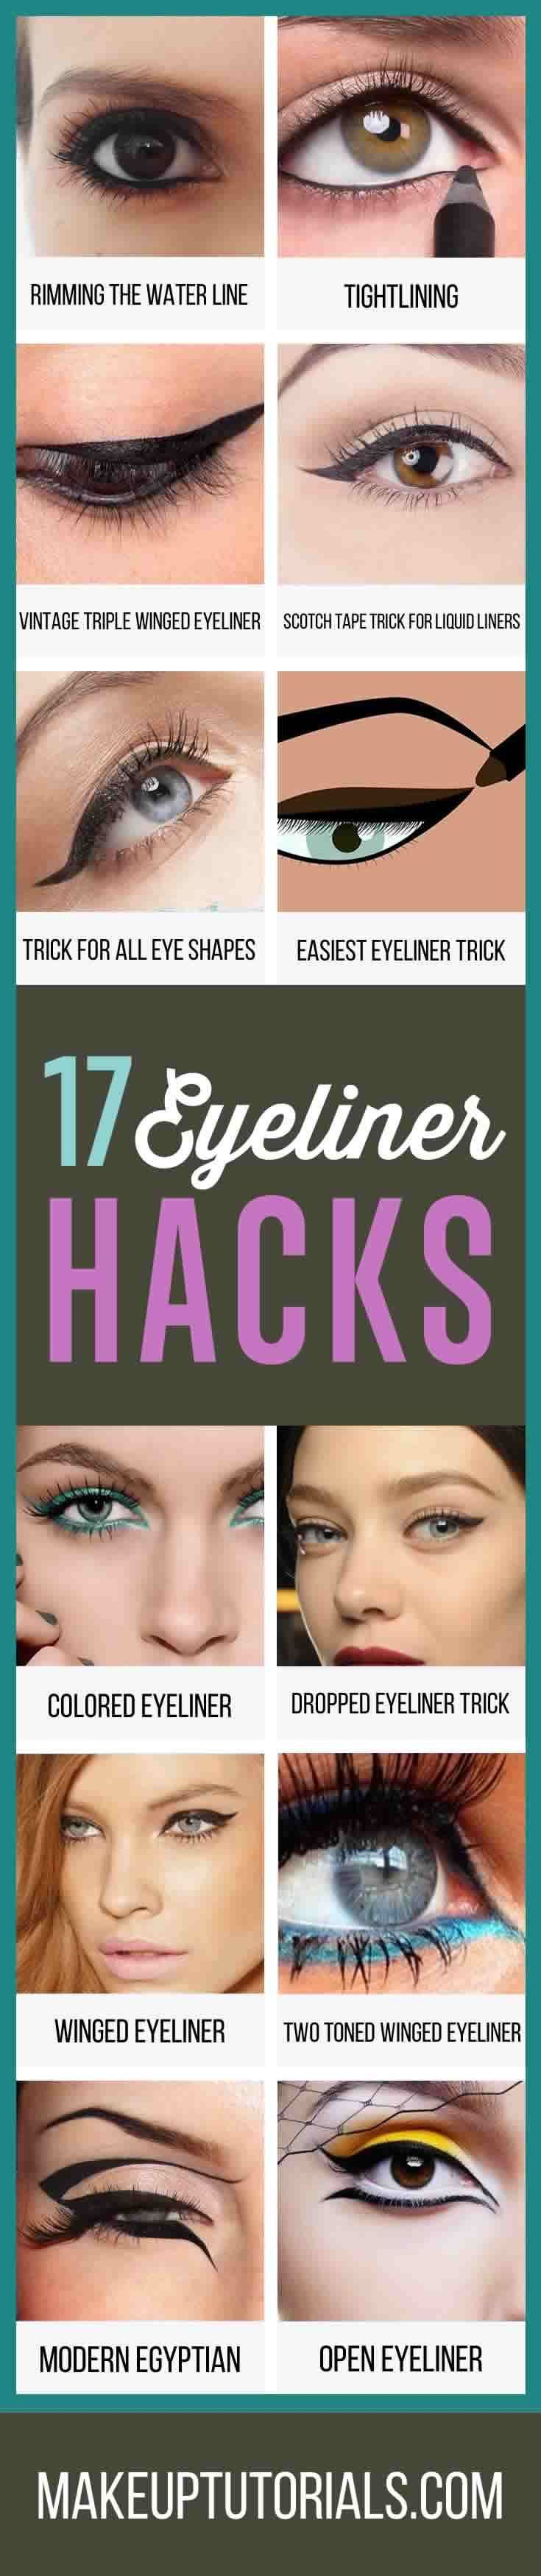 How To Do Really Awesome Eyeliner Hacks | Cool DIY Tips For Doing Perfect Winged Tip Eyeliner By Makeup Tutorials. http://makeuptutorials.com/makeup-tutorials-17-great-eyeliner-hacks/